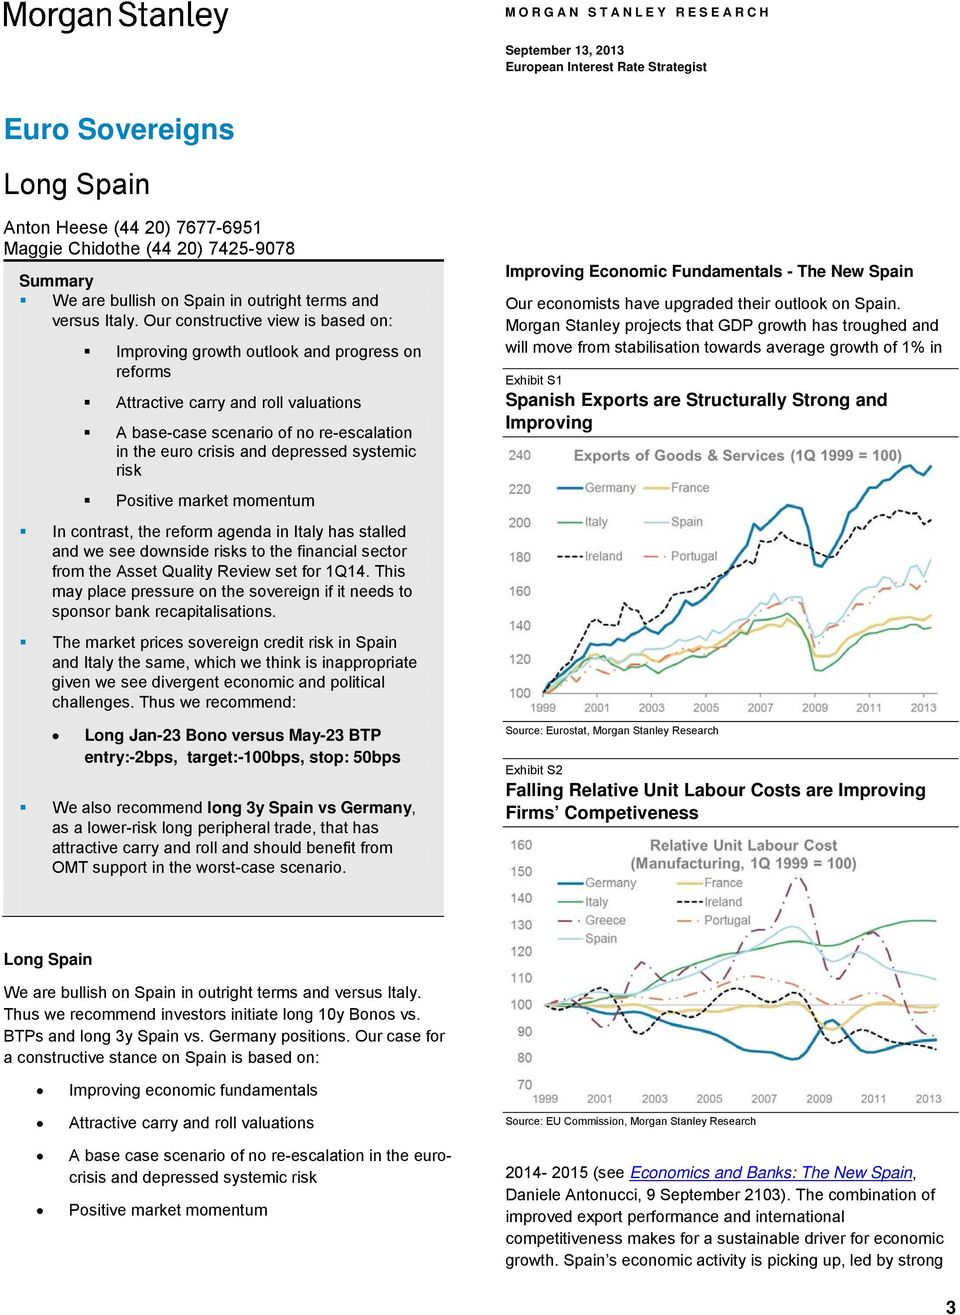 systemic risk Positive market momentum In contrast, the reform agenda in Italy has stalled and we see downside risks to the financial sector from the Asset Quality Review set for 1Q14.